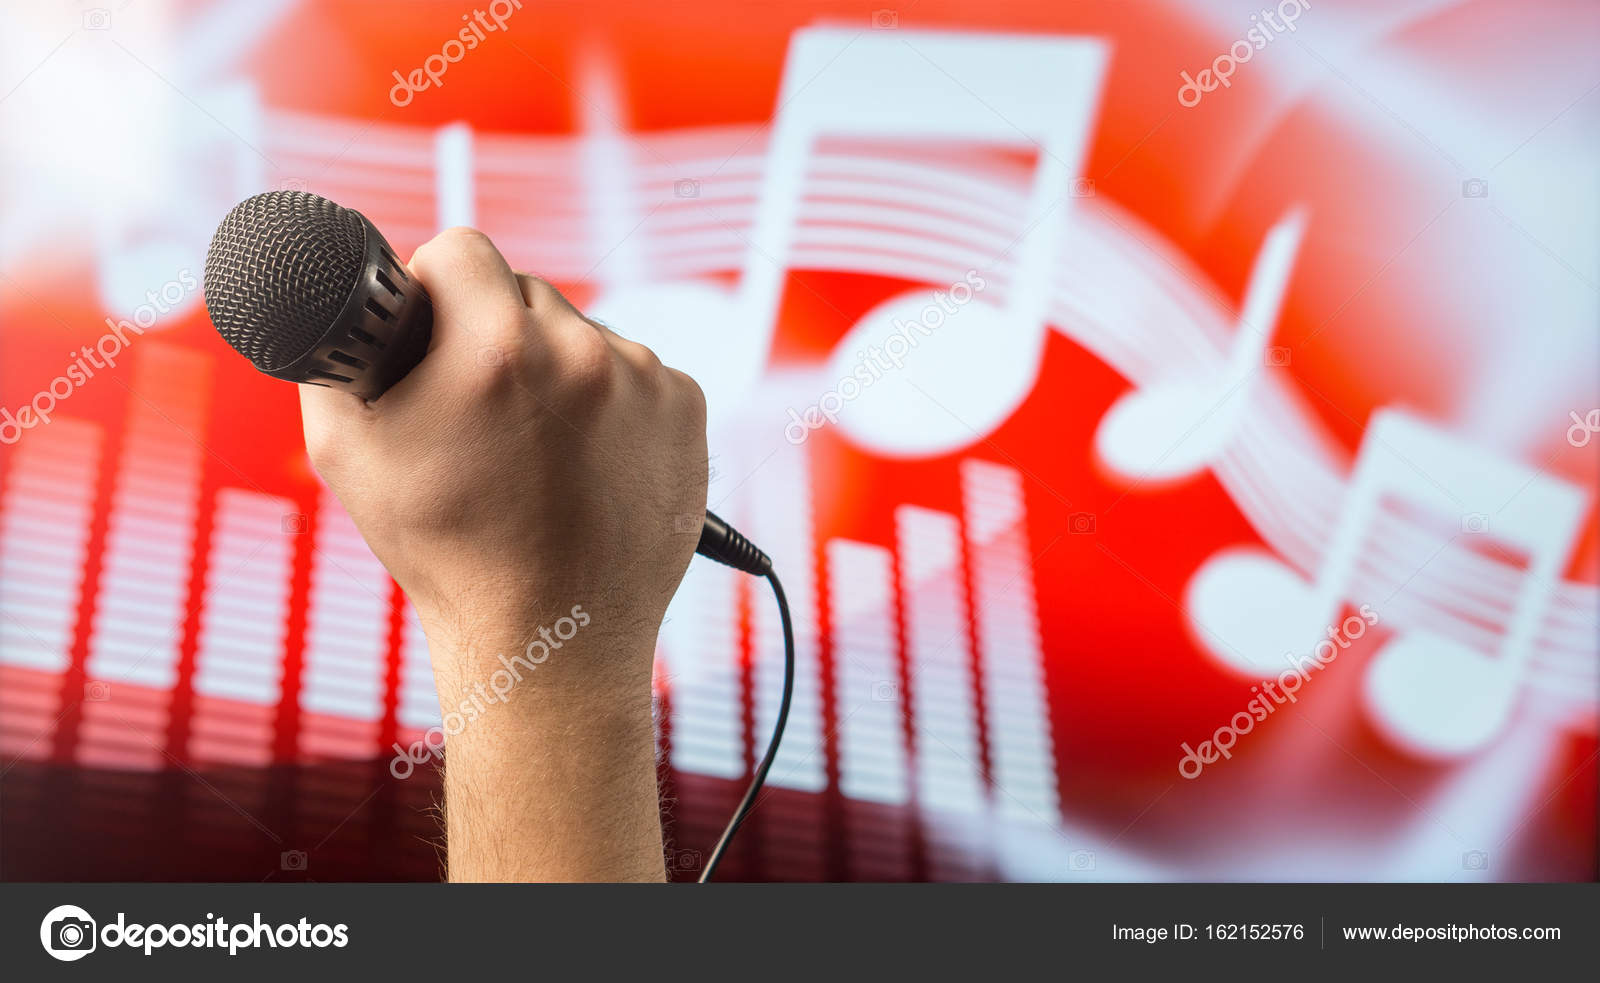 Man holding microphone in front of an abstract music and